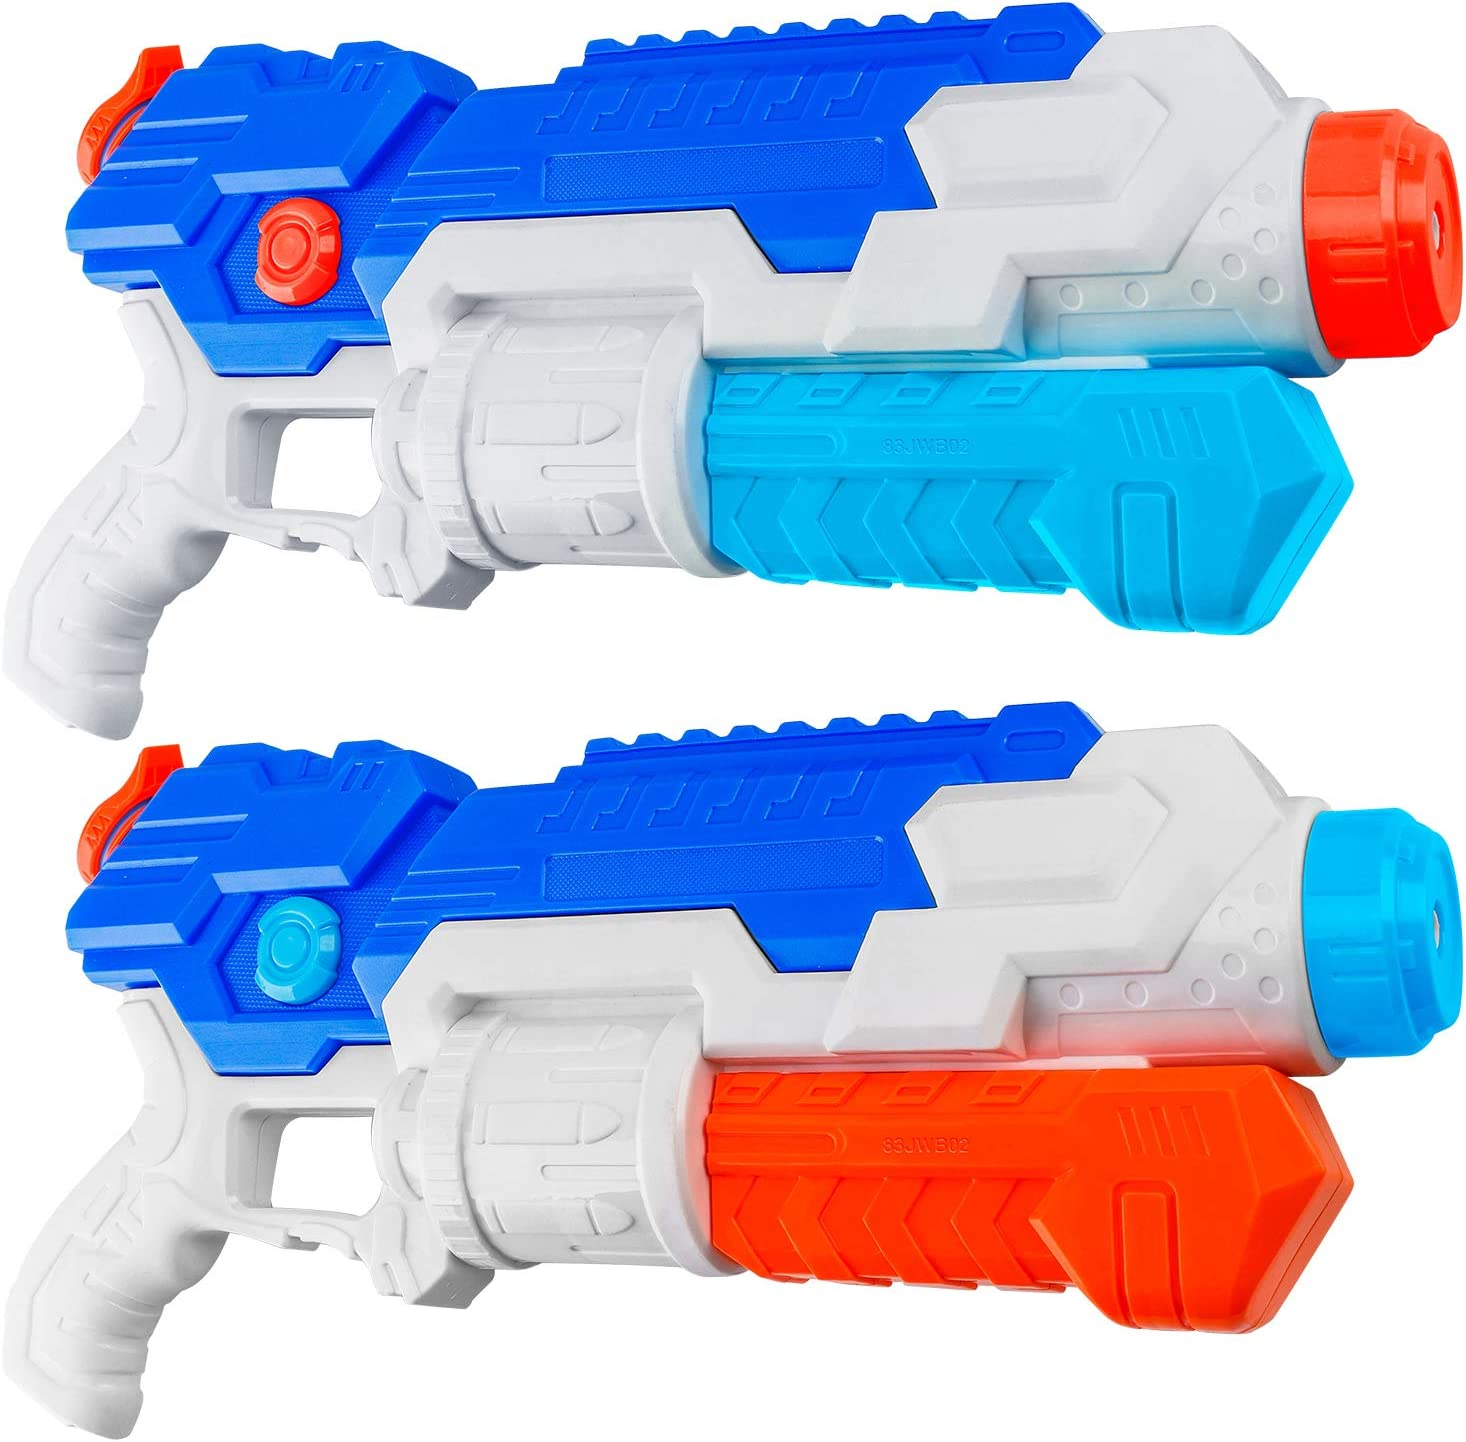 HDJUNTUNKOR Super Water Gun for Kids, 2 Pack Water Soaker Blaster Squirt-Gun for Adults 40Ft Long Range Water Blaster for Teens Beach Swimming Pool Water Fighting Toy - 800CC Capacity